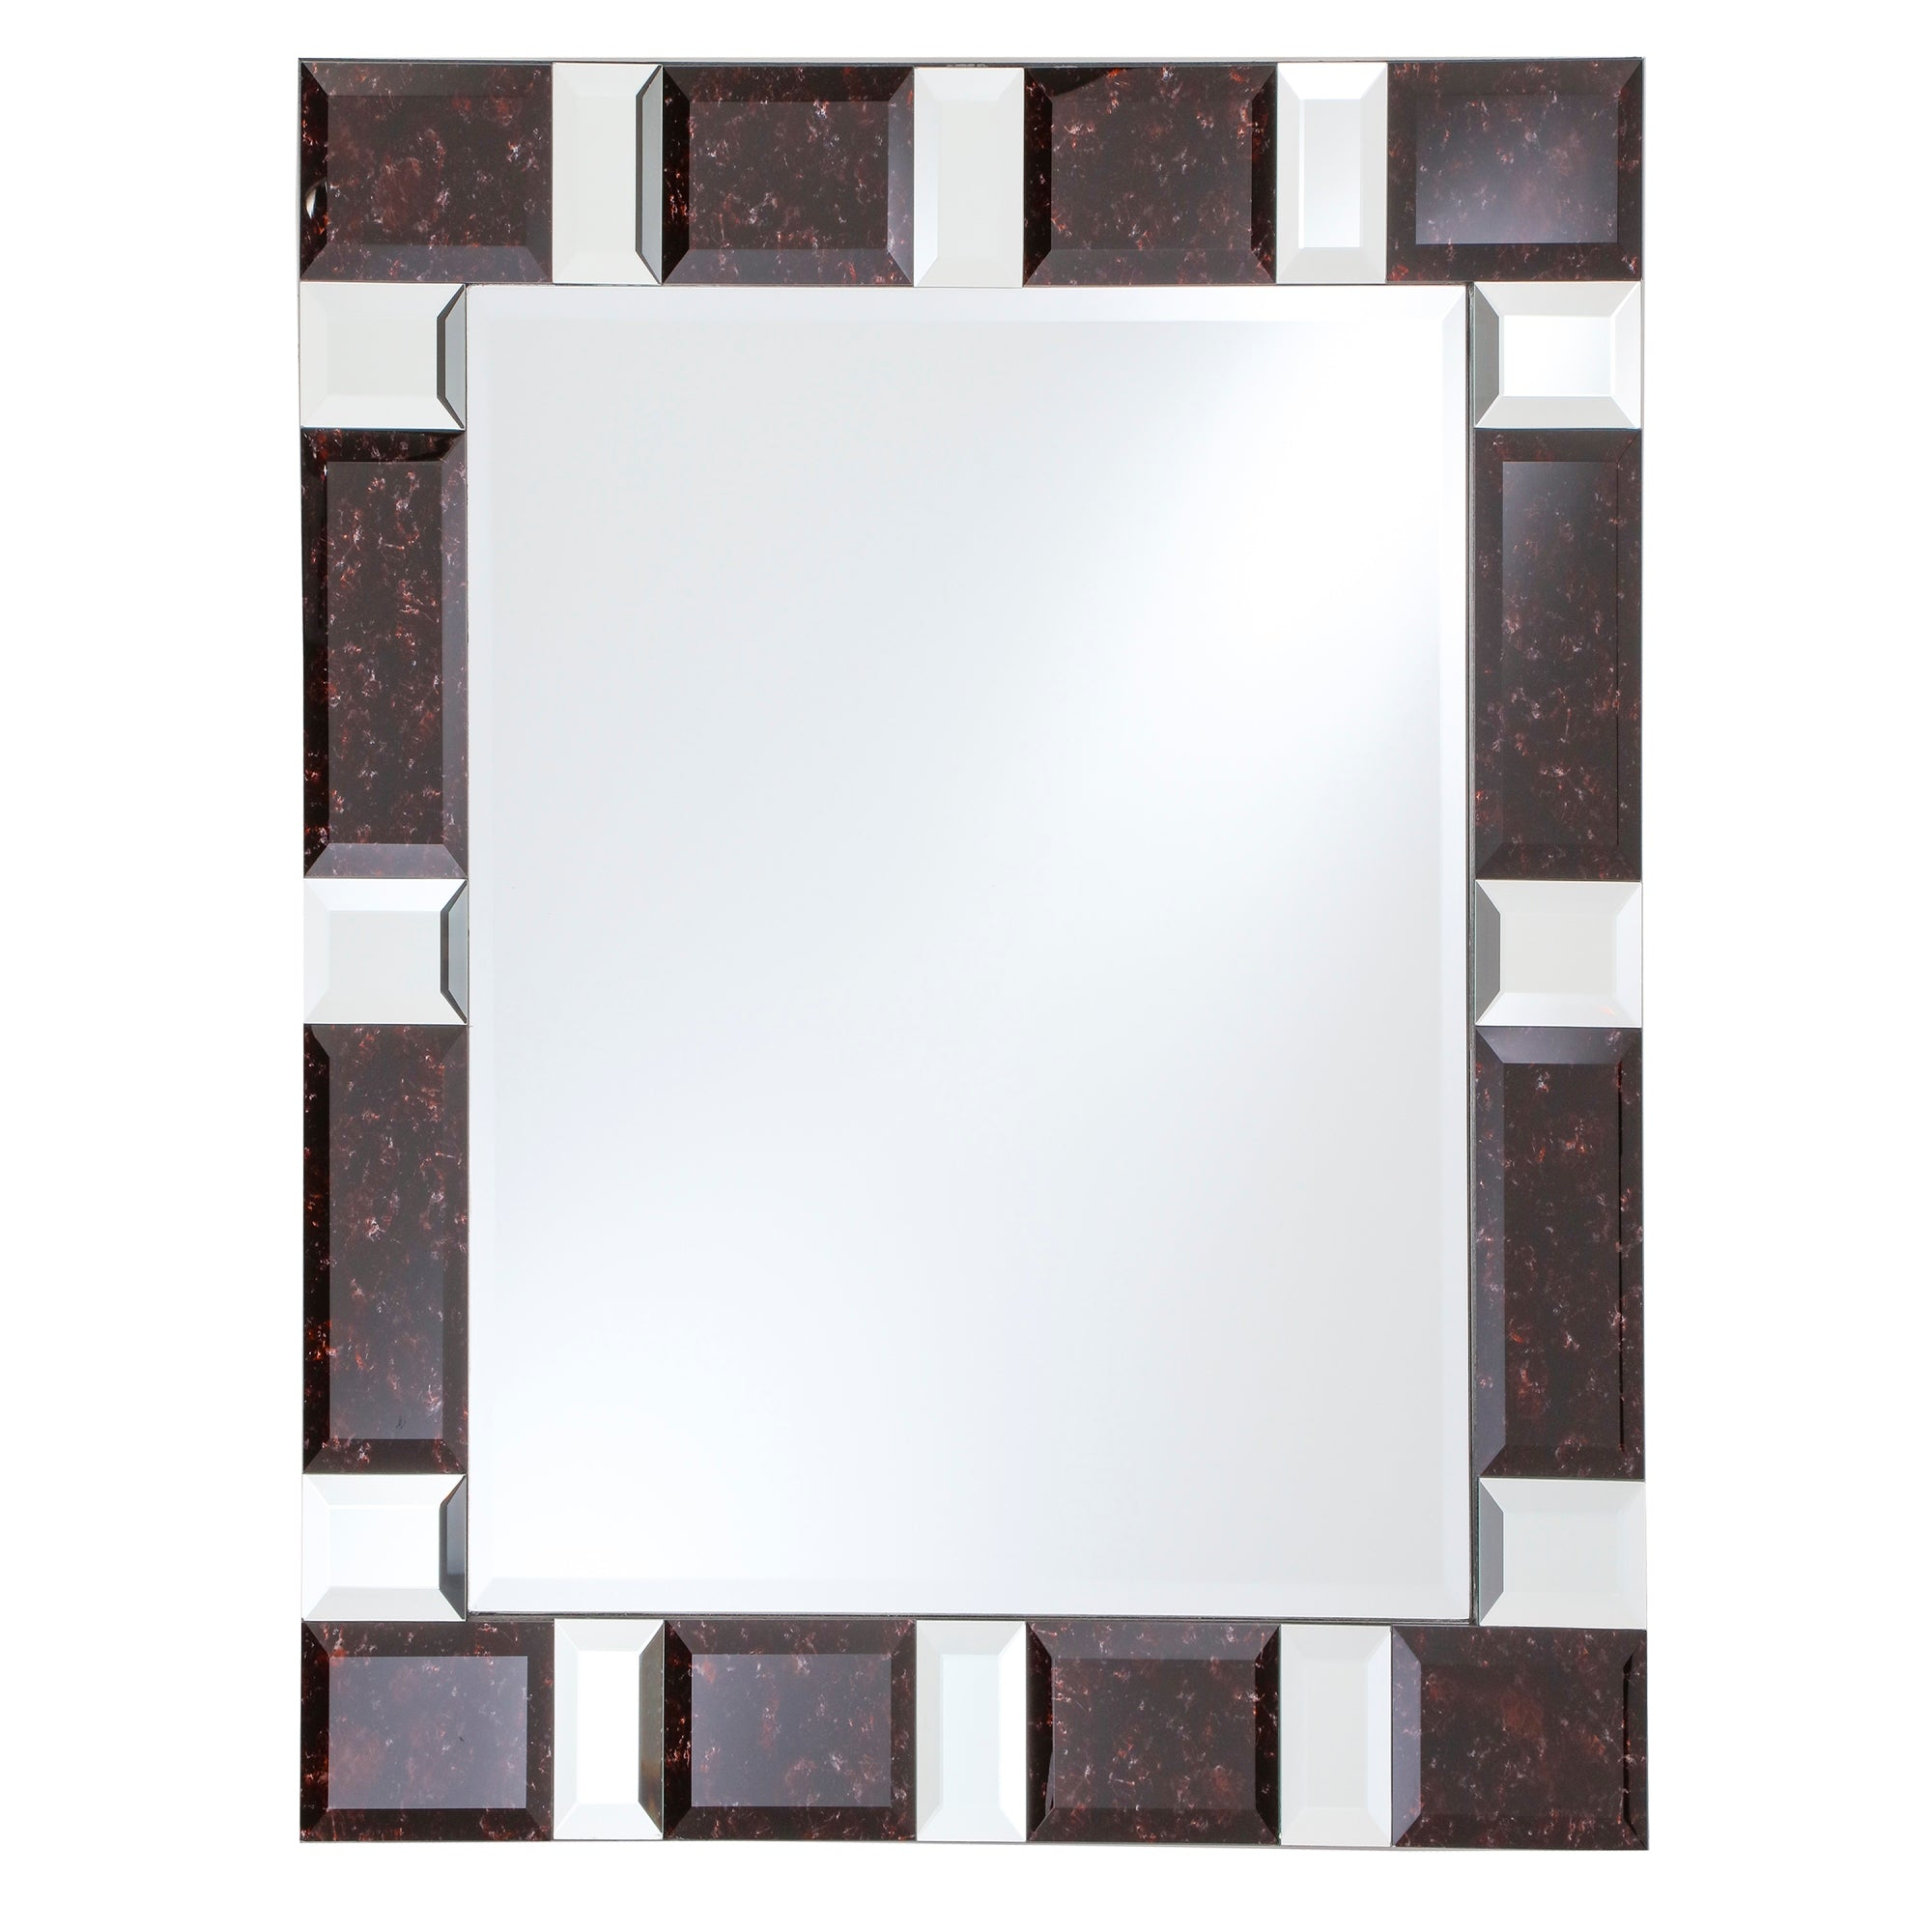 gh home x decor mirrors wall great mirror piece walls projects small decorative diverting arresting measurements stratton ideas pertainingto sets